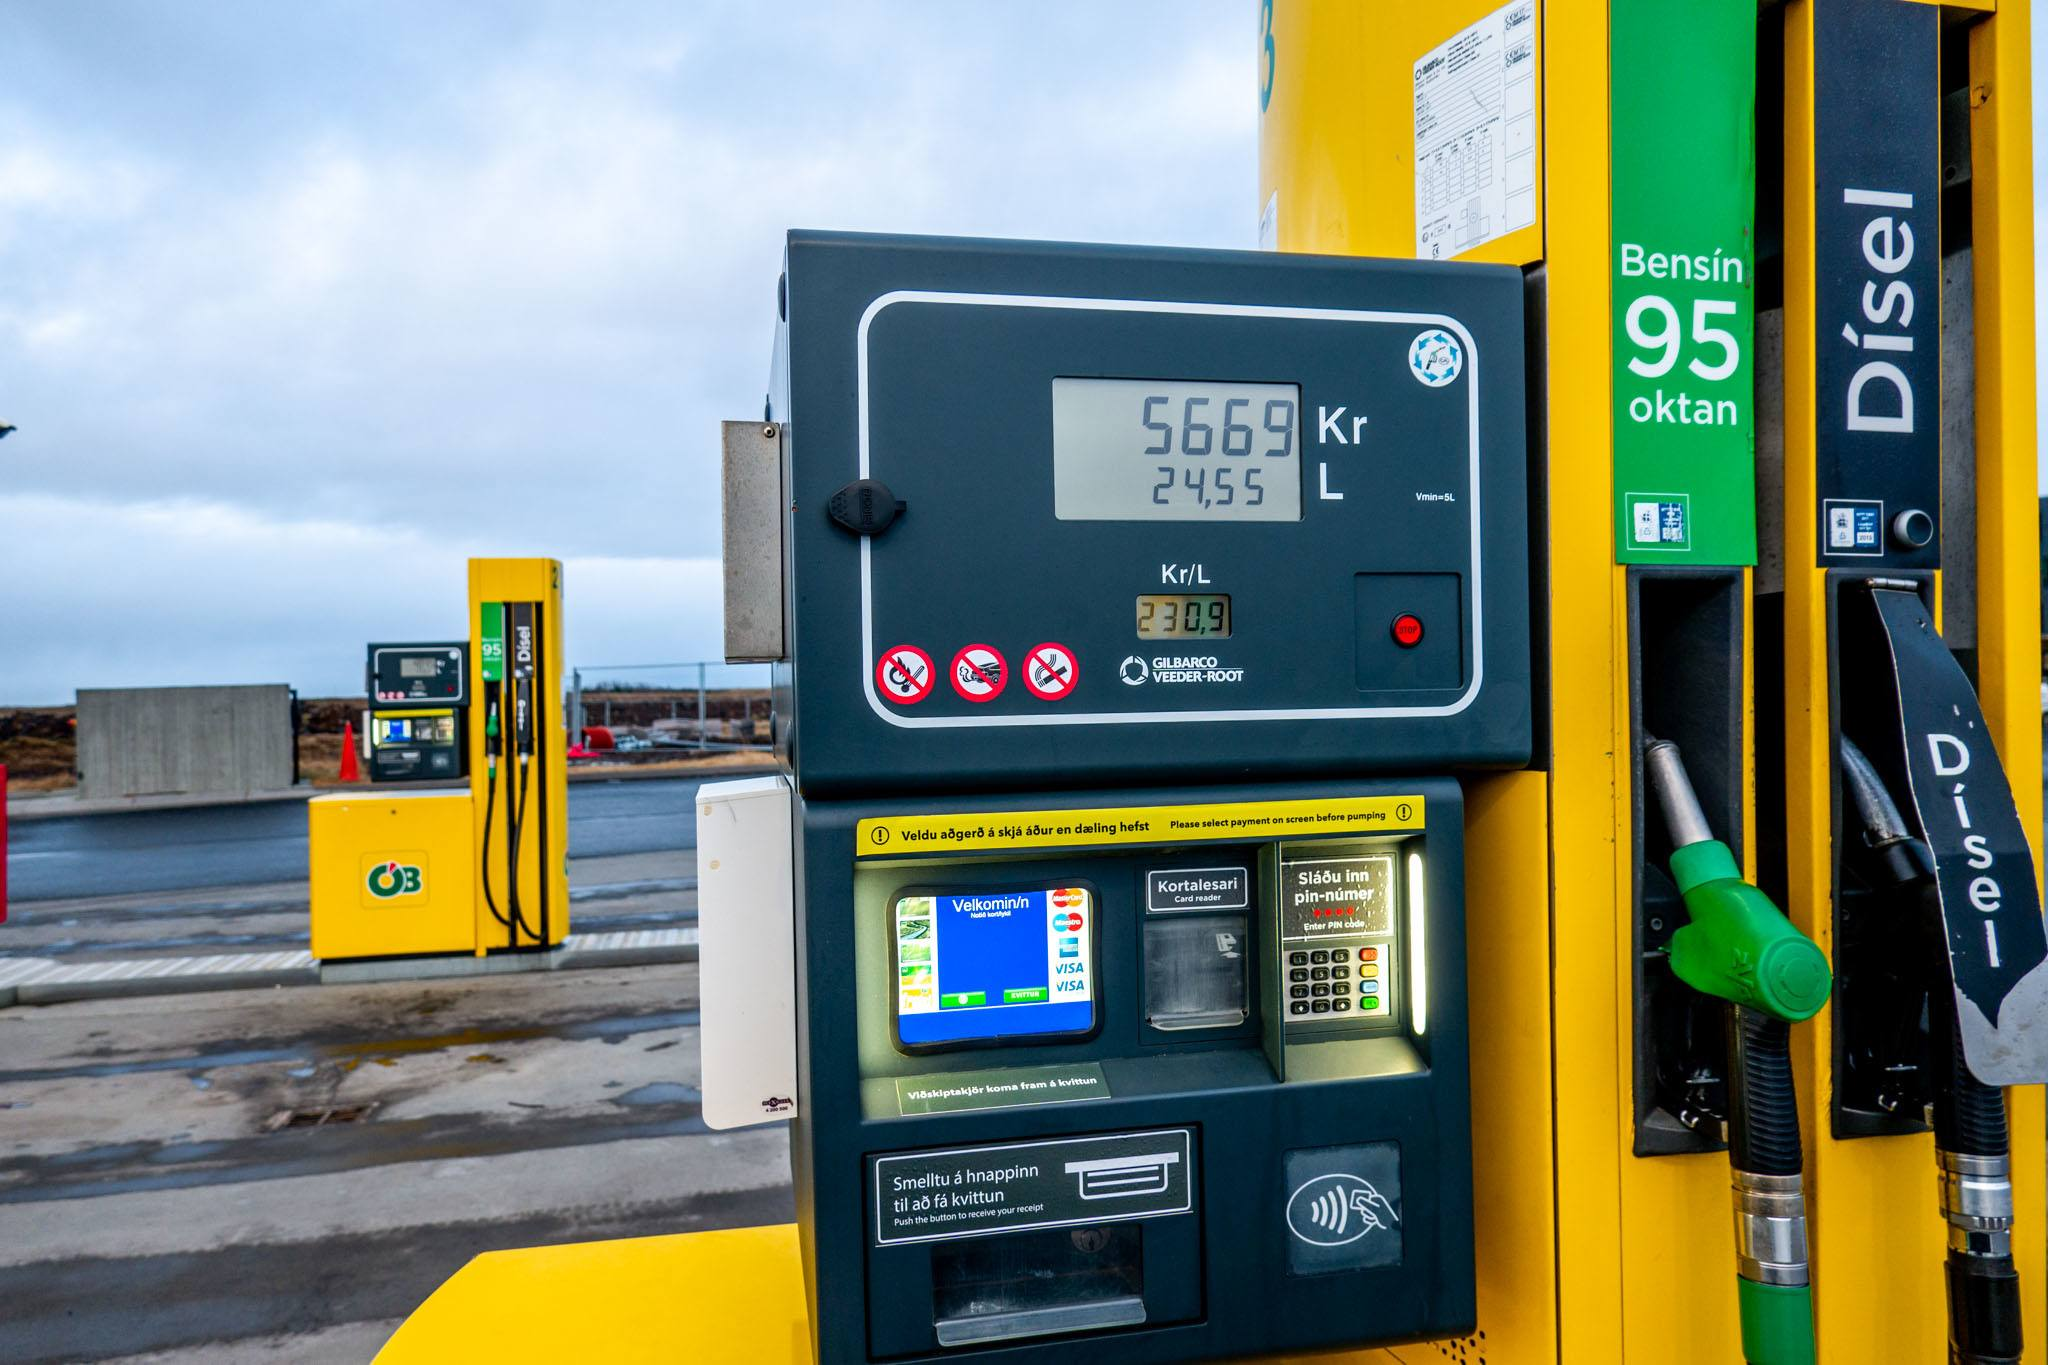 A self-pay pump at an Iceland gas station